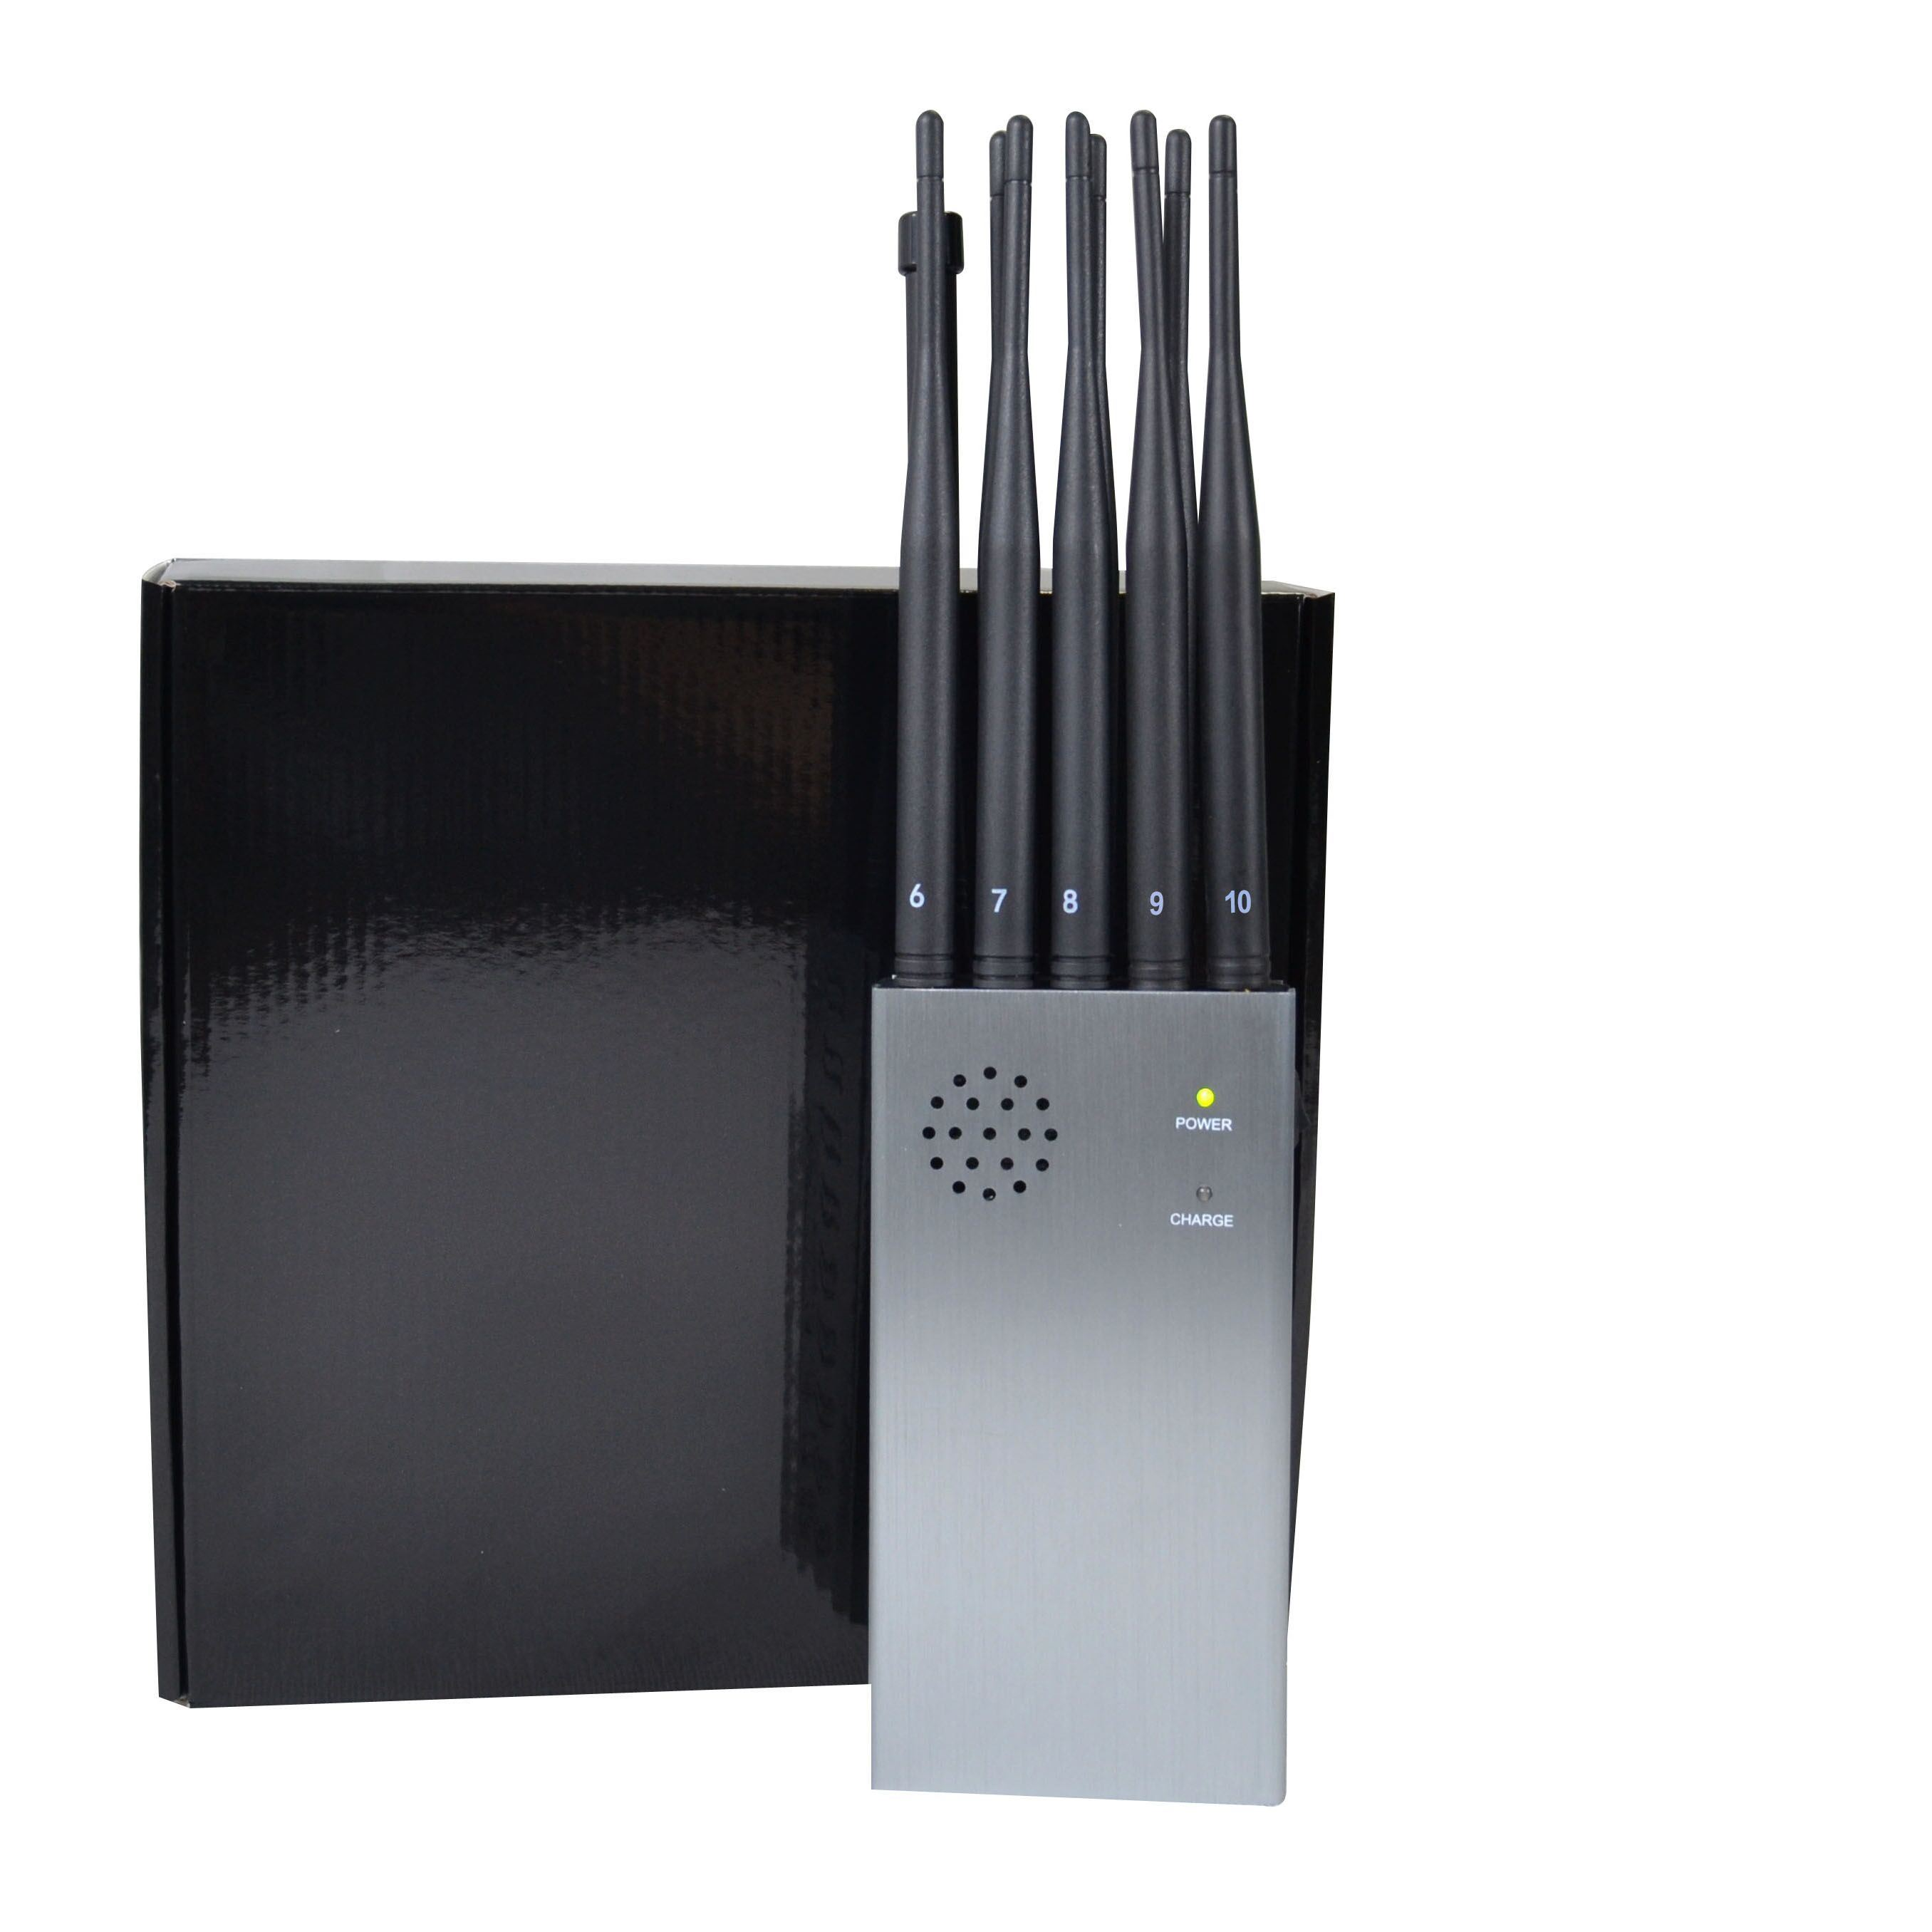 phone jammer dx diagnostics - China Handled Portable Jammer with 10 Antennas Newest Model Updated Version with 8000mA - China 8000mA Battery Jammer, Large Volume Power Signal Blocker